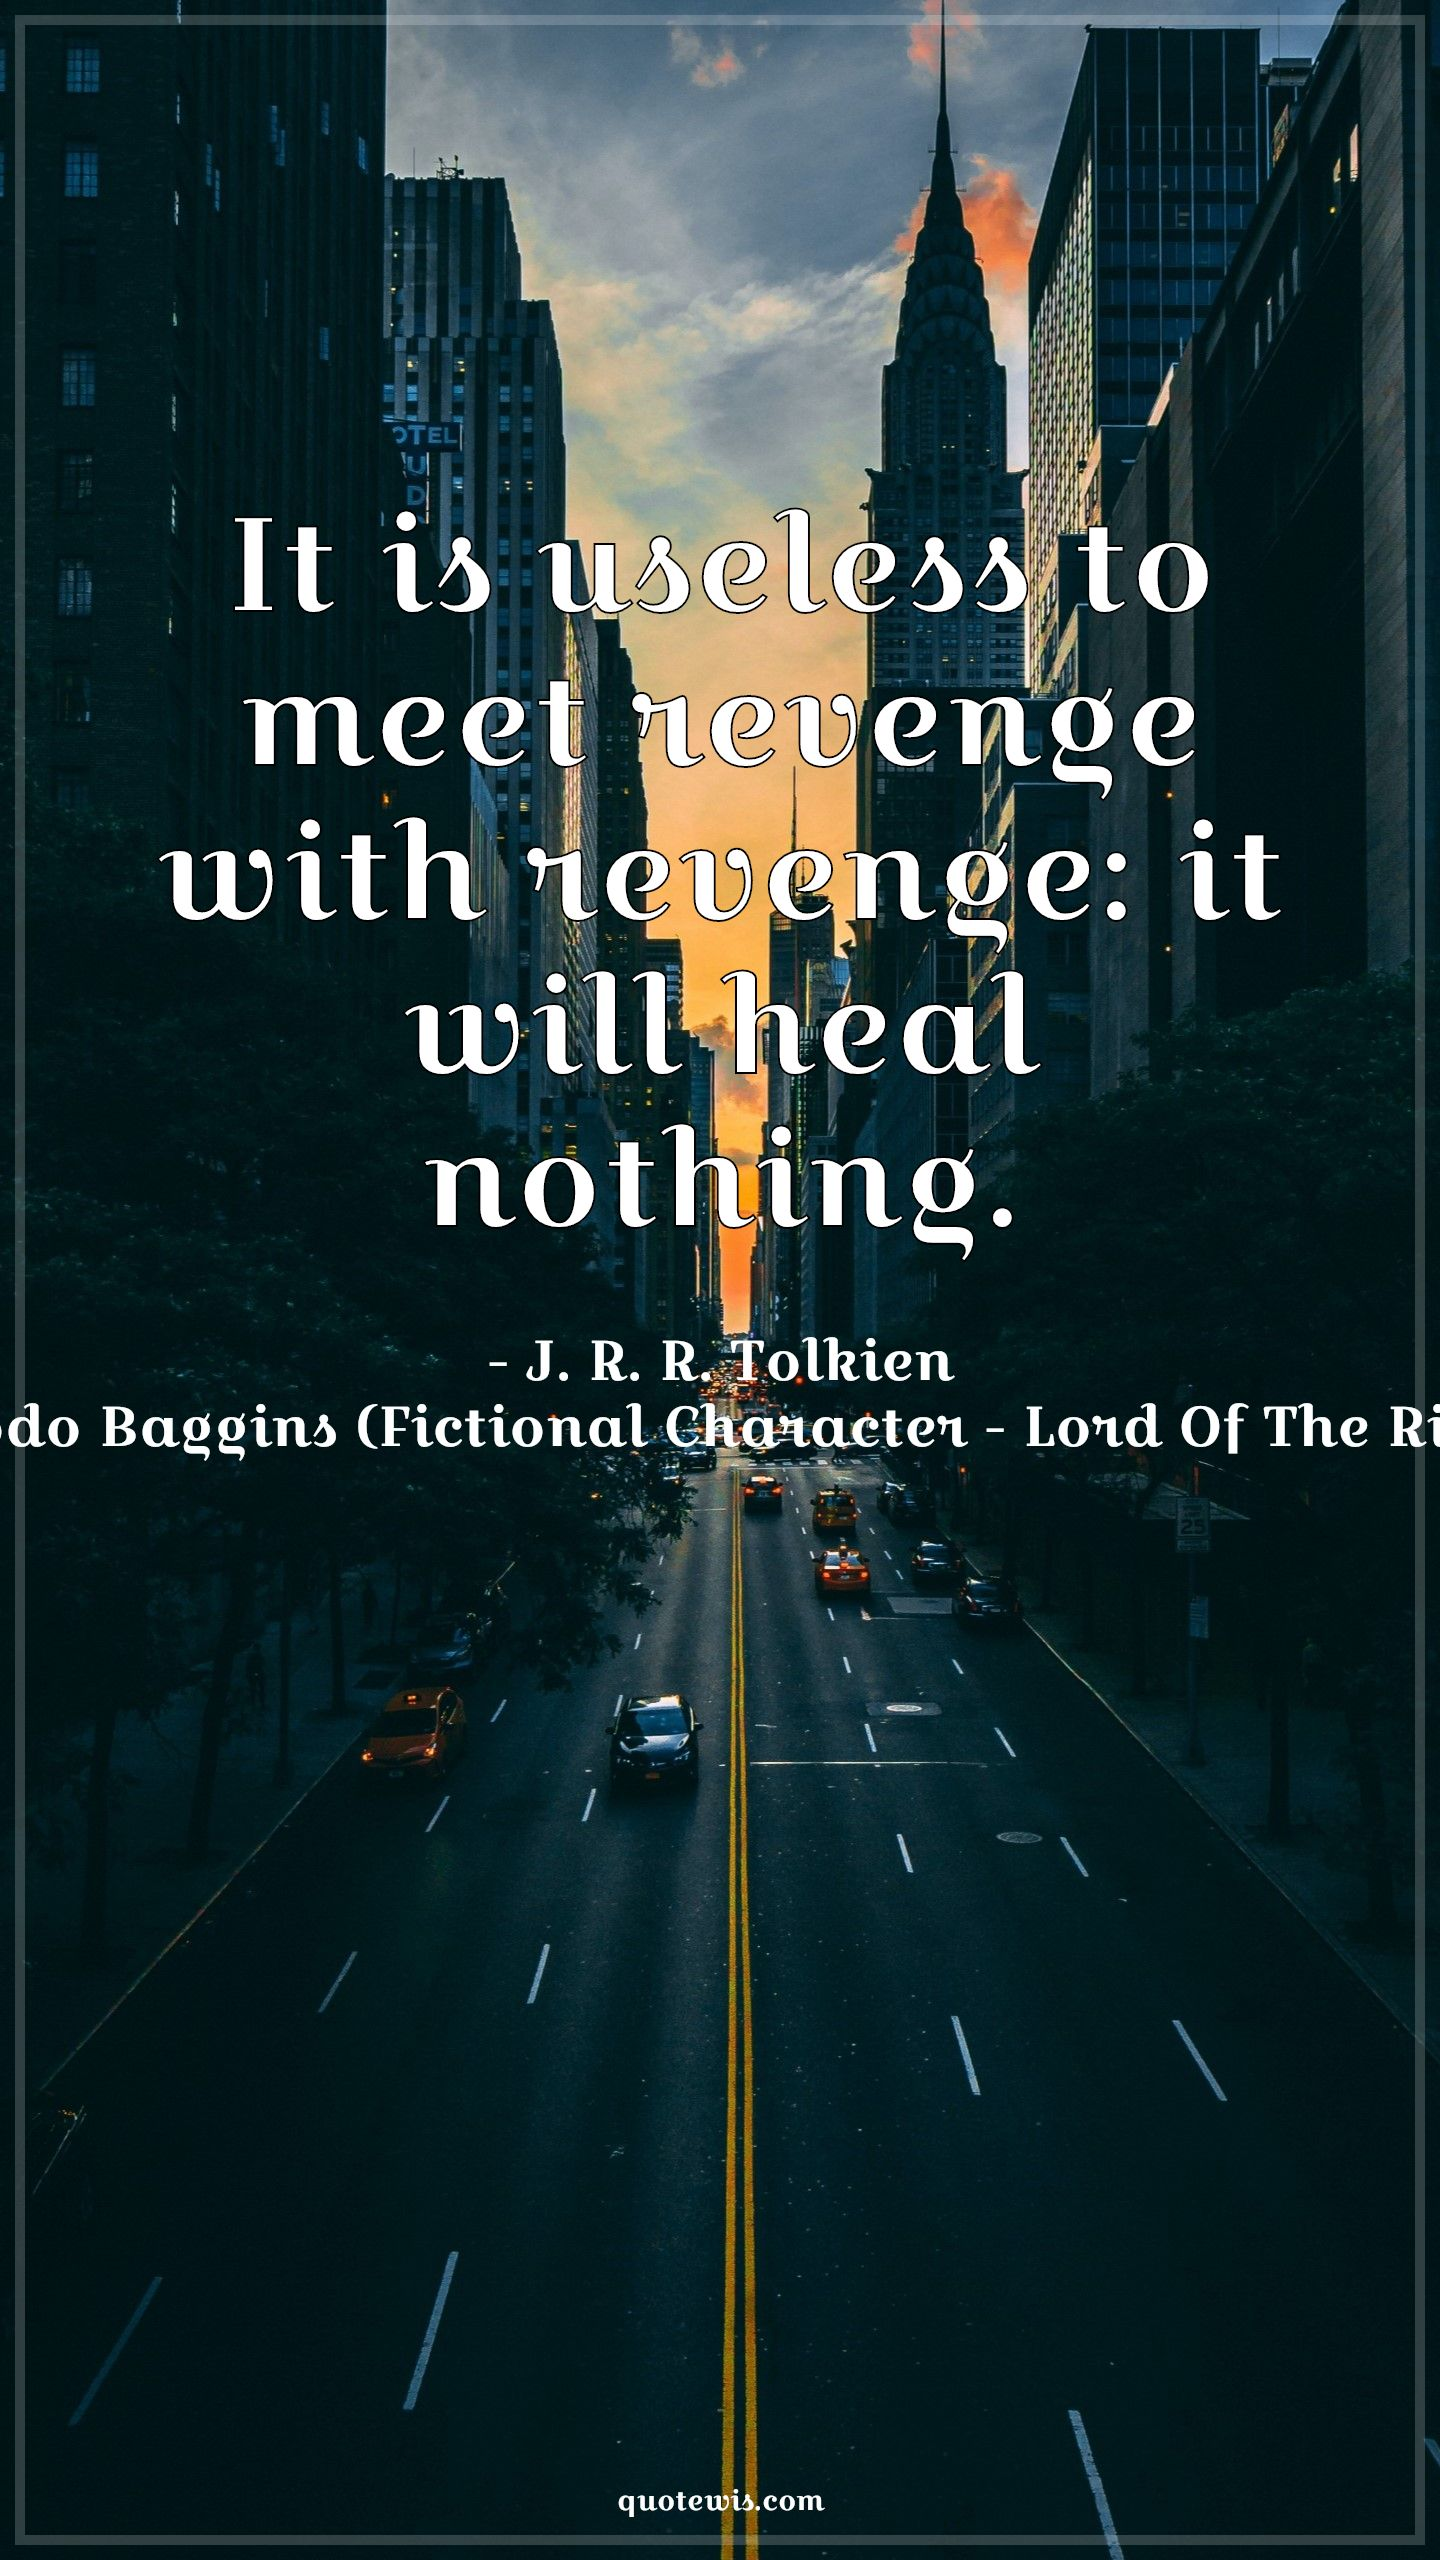 It is useless to meet revenge with revenge: it will heal nothing.